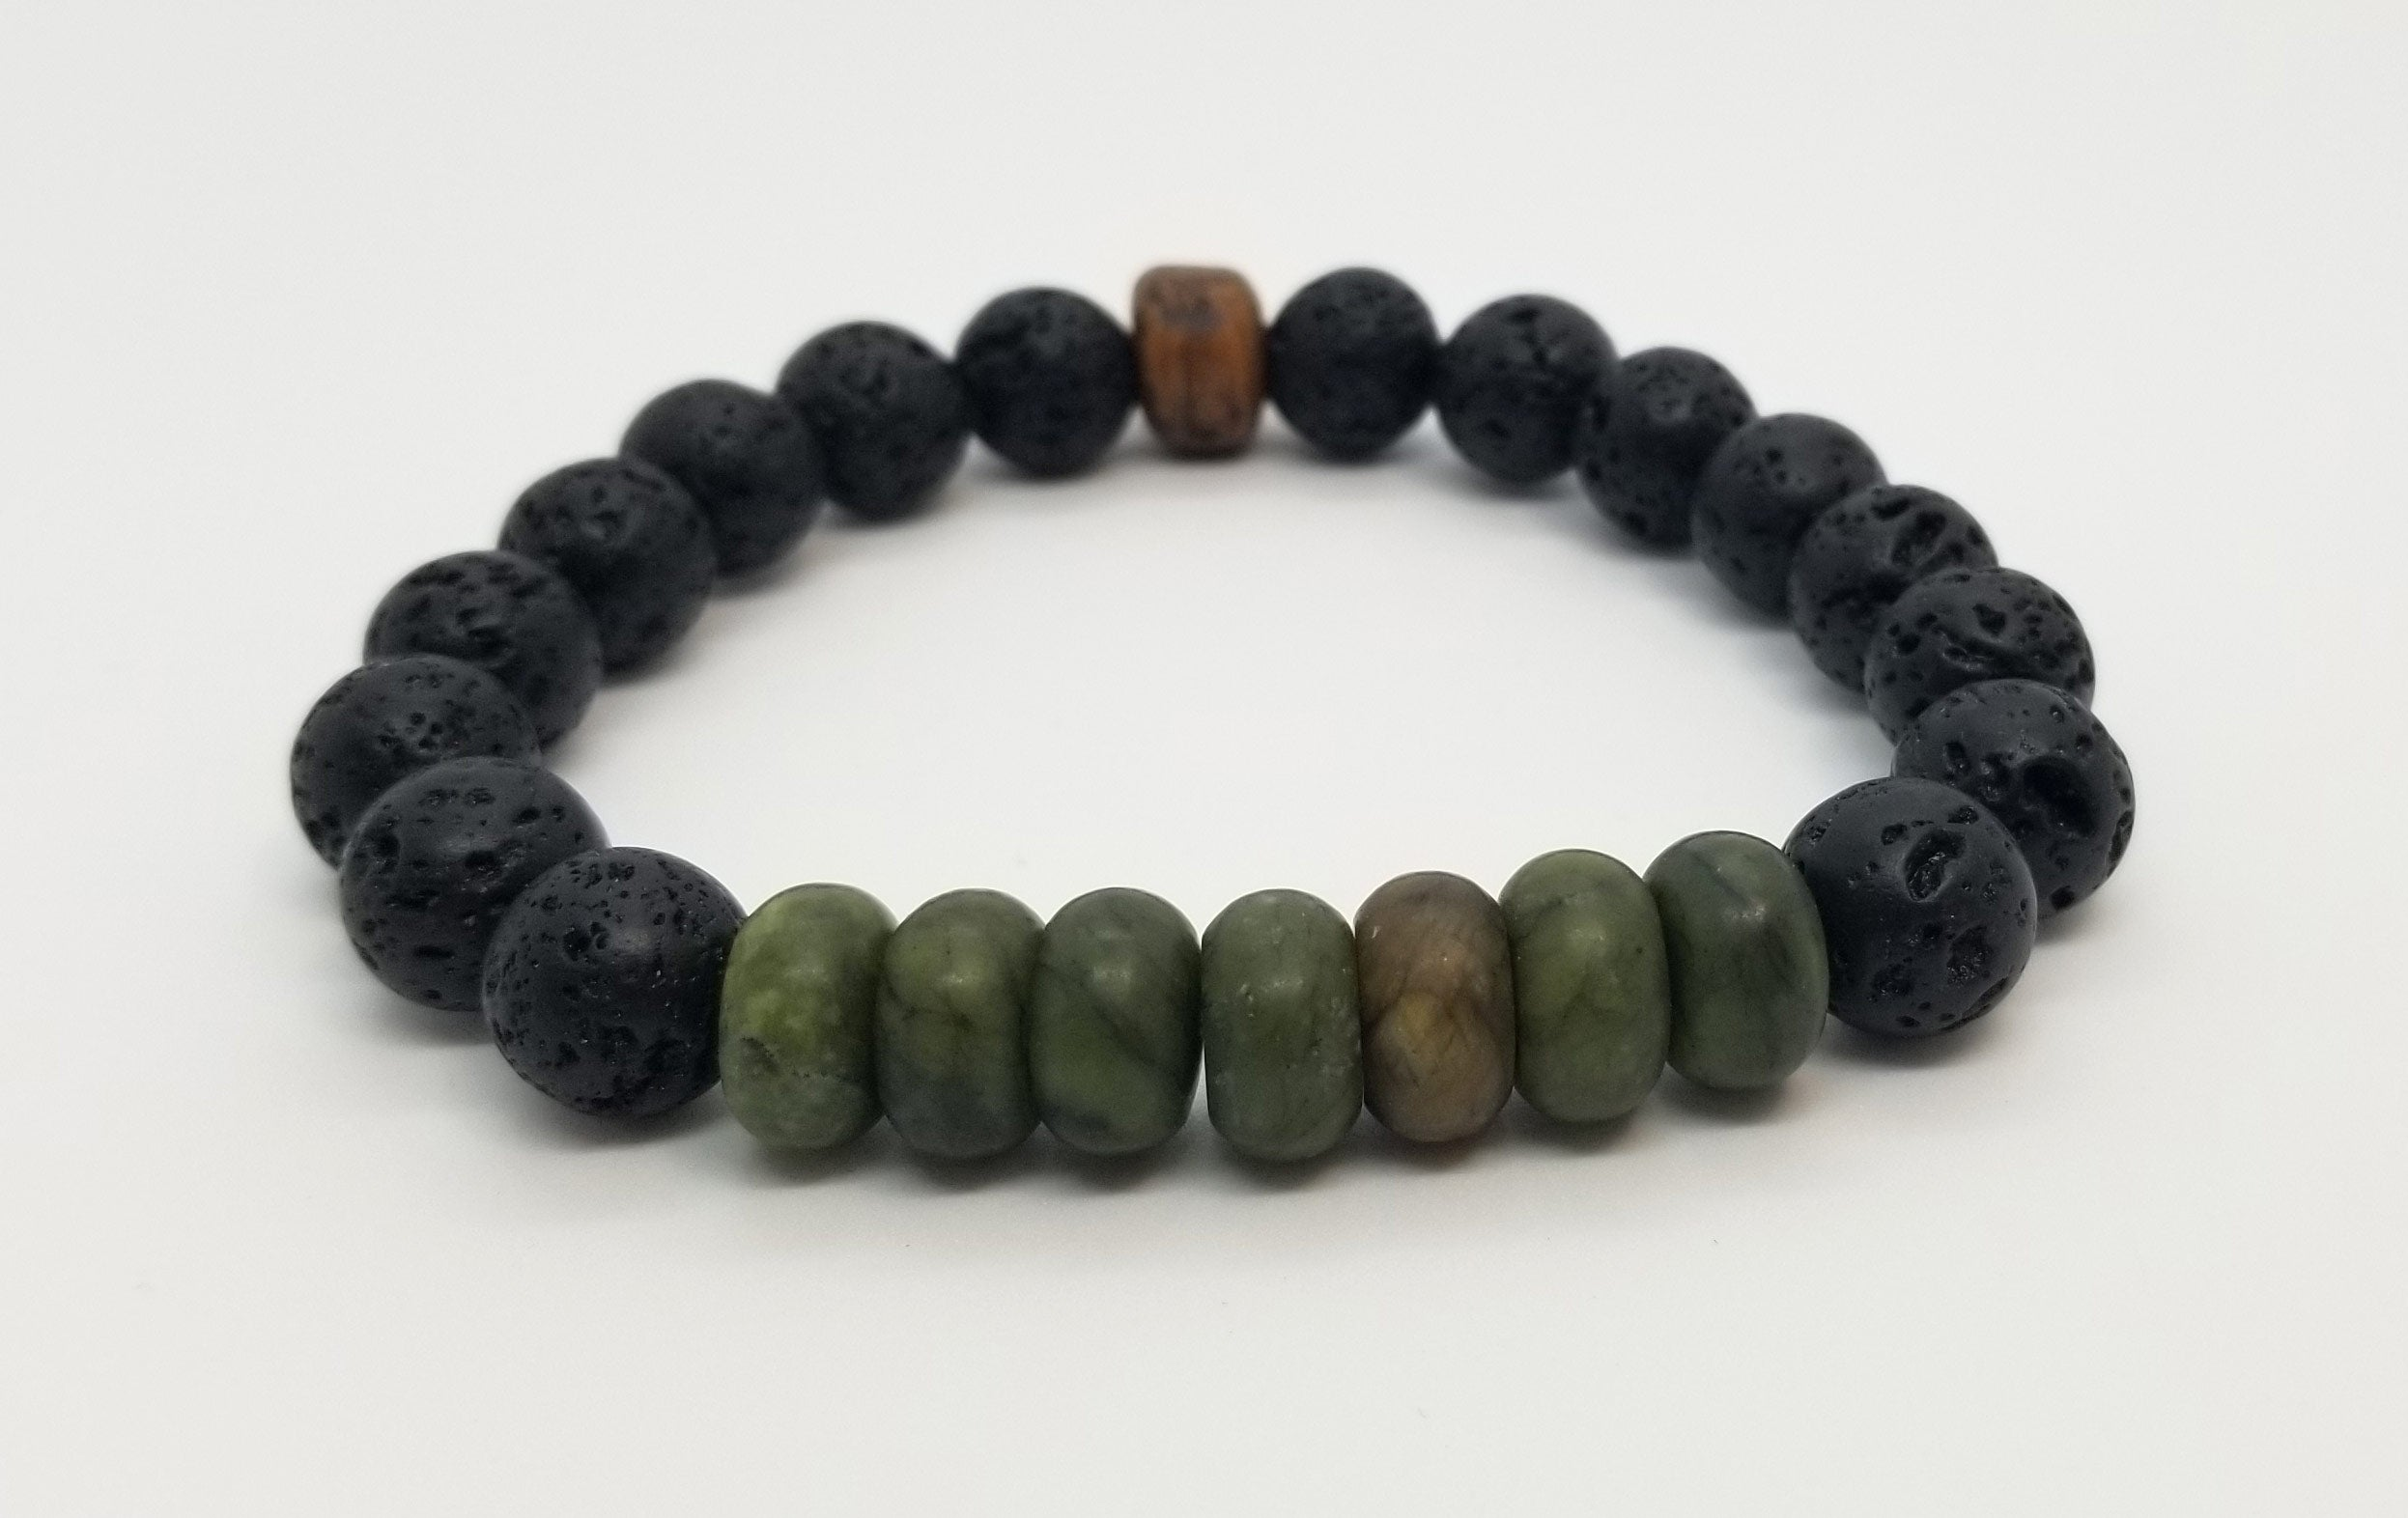 10mm Taiwanese Jade and Lava with Wood Bead Bracelet